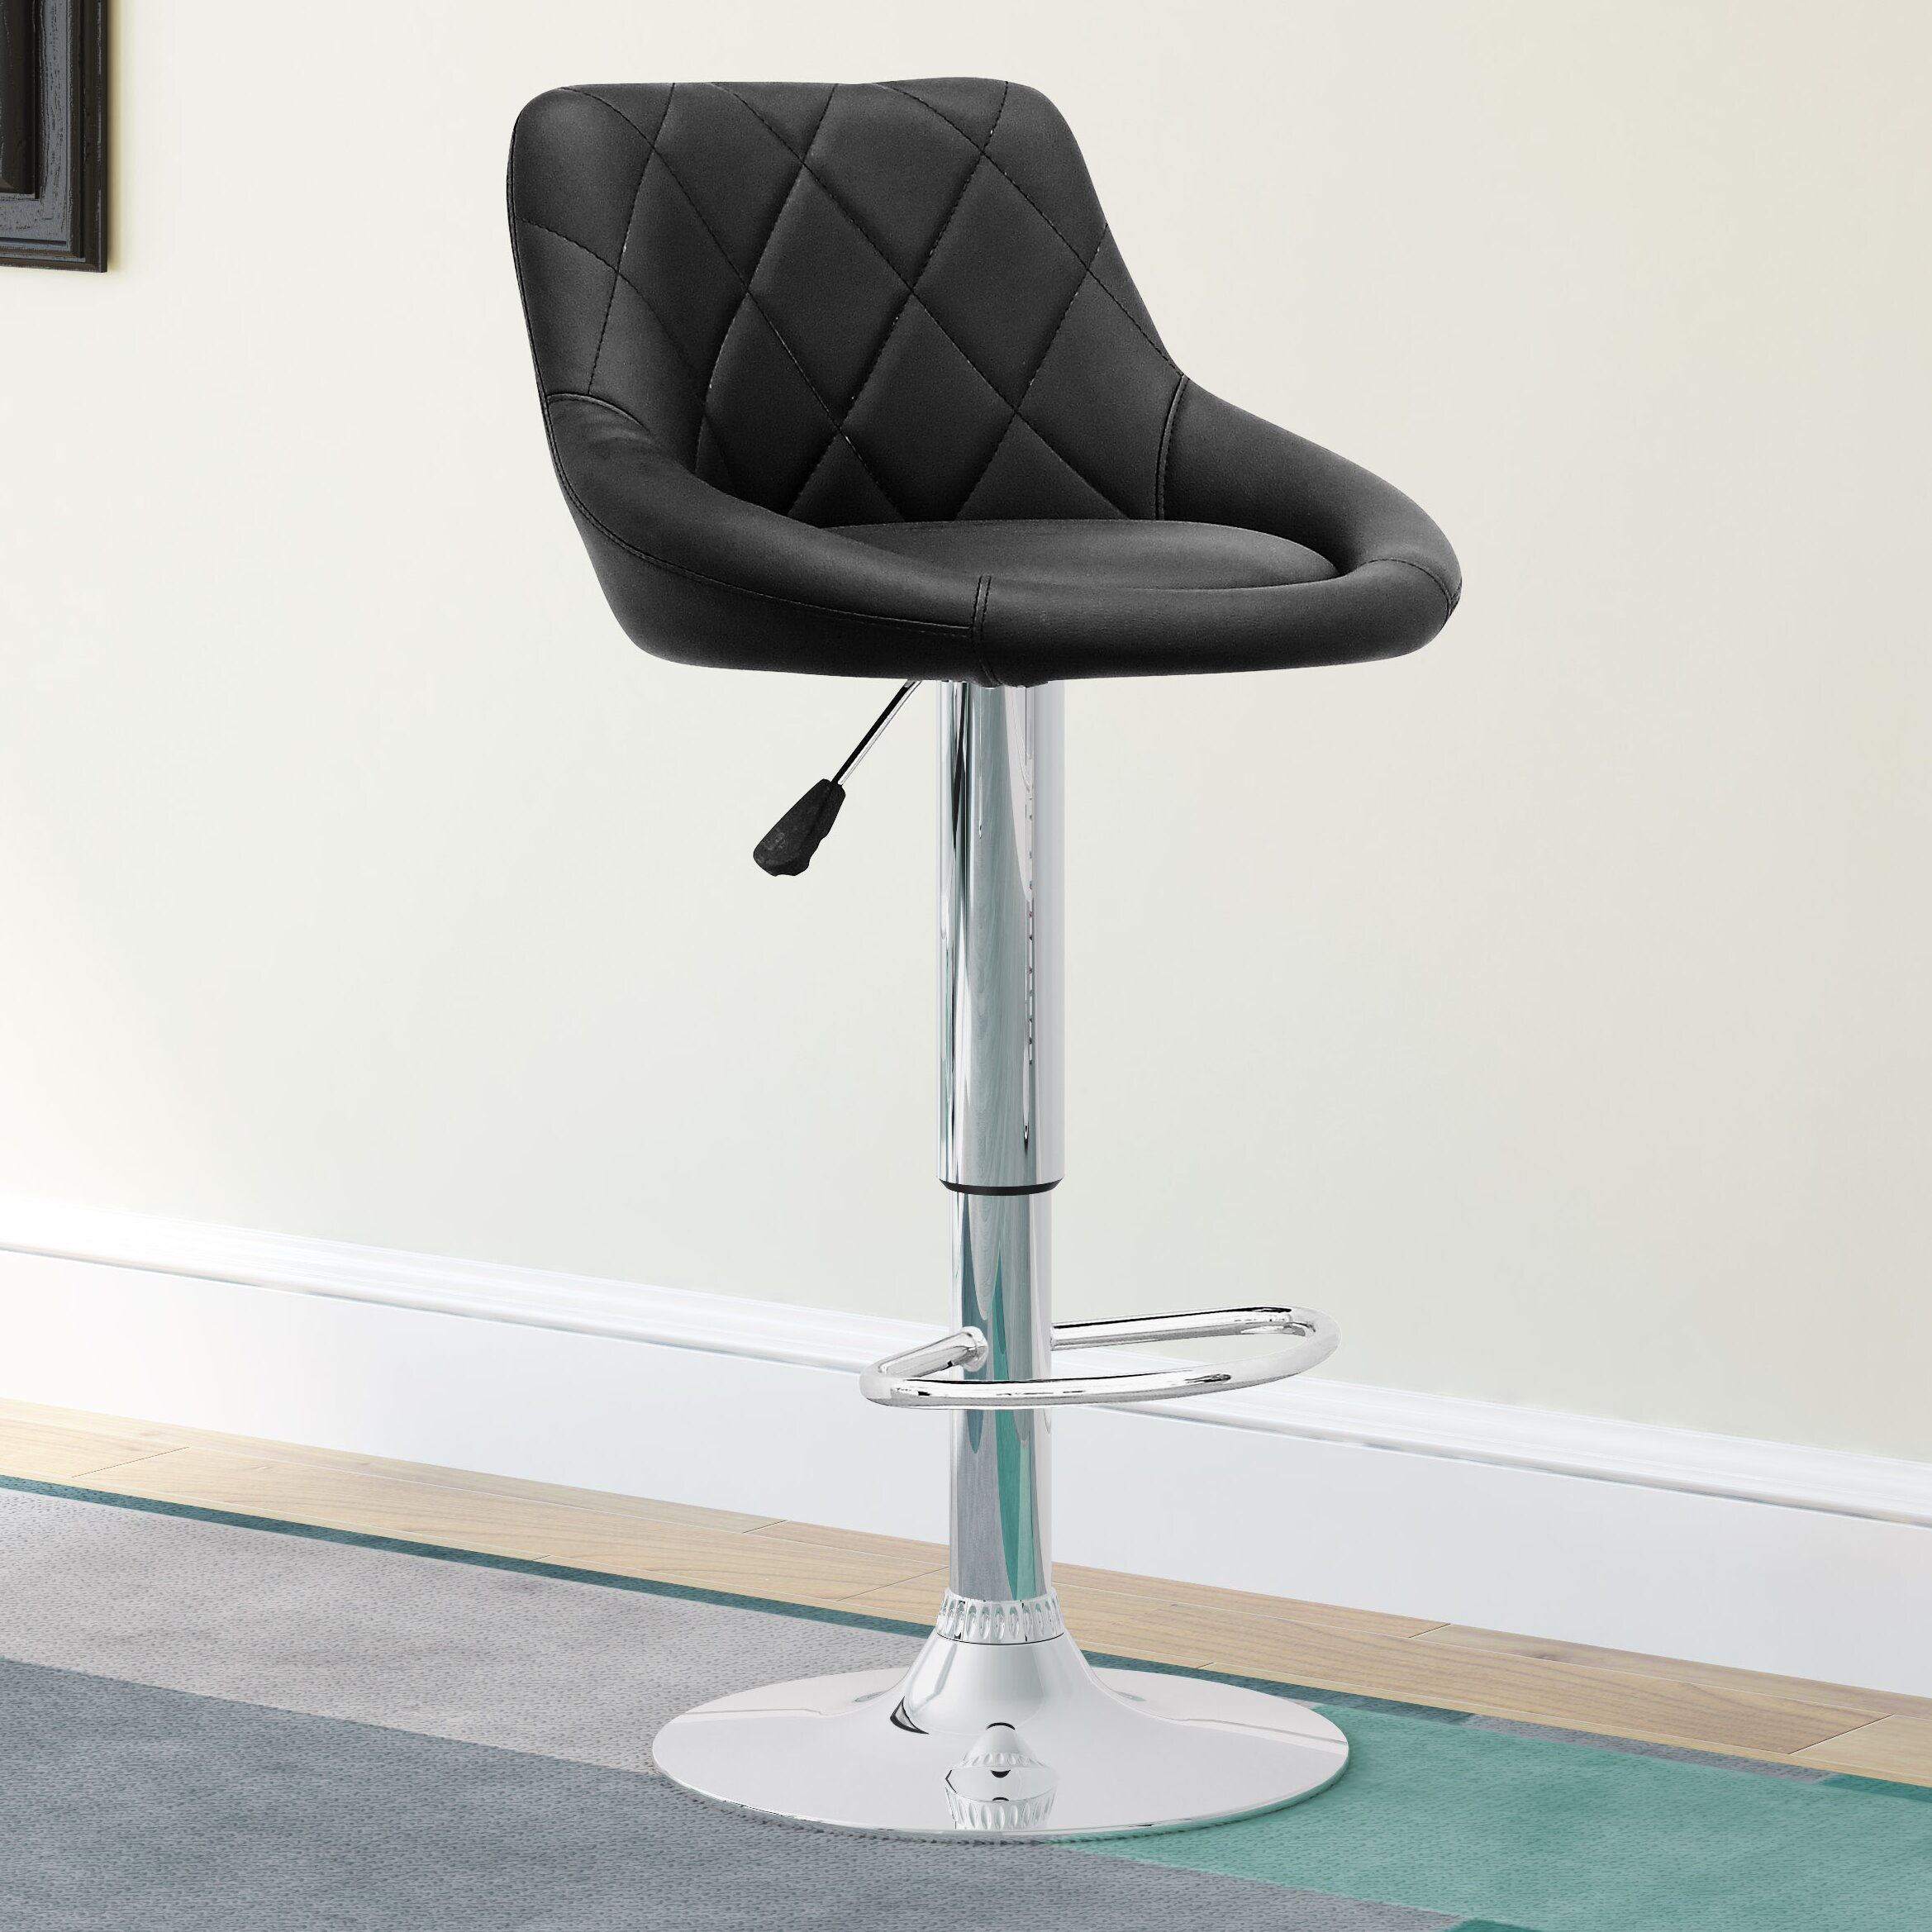 CorLiving Adjustable Height Swivel Bar Stool amp Reviews  : CorLiving Adjustable Height Swivel Bar Stool from www.wayfair.com size 2338 x 2338 jpeg 605kB